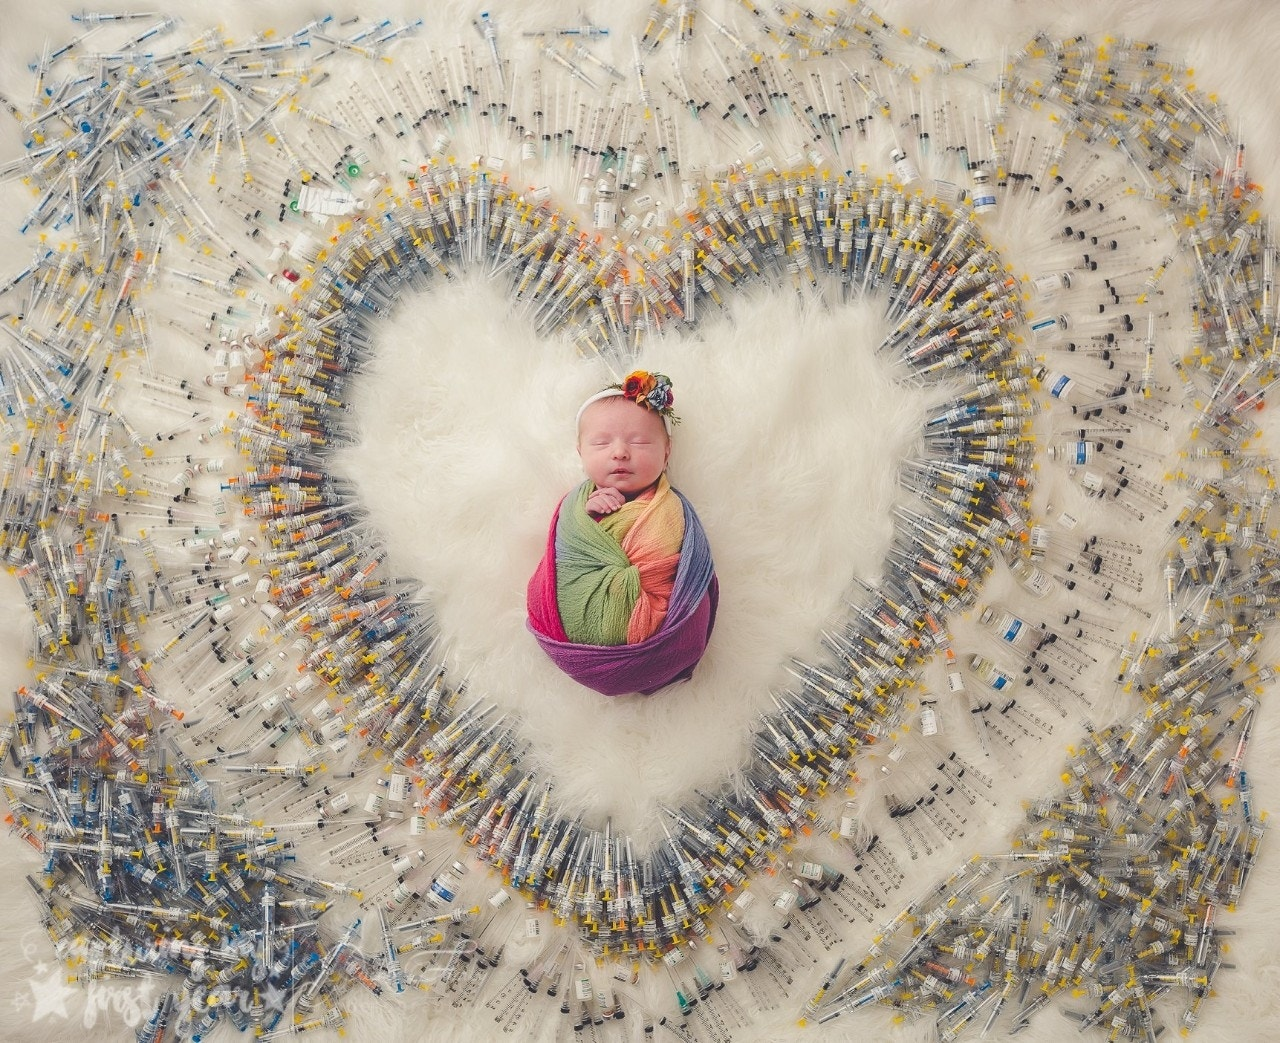 Photo of newborn surrounded by IVF syringes goes viral